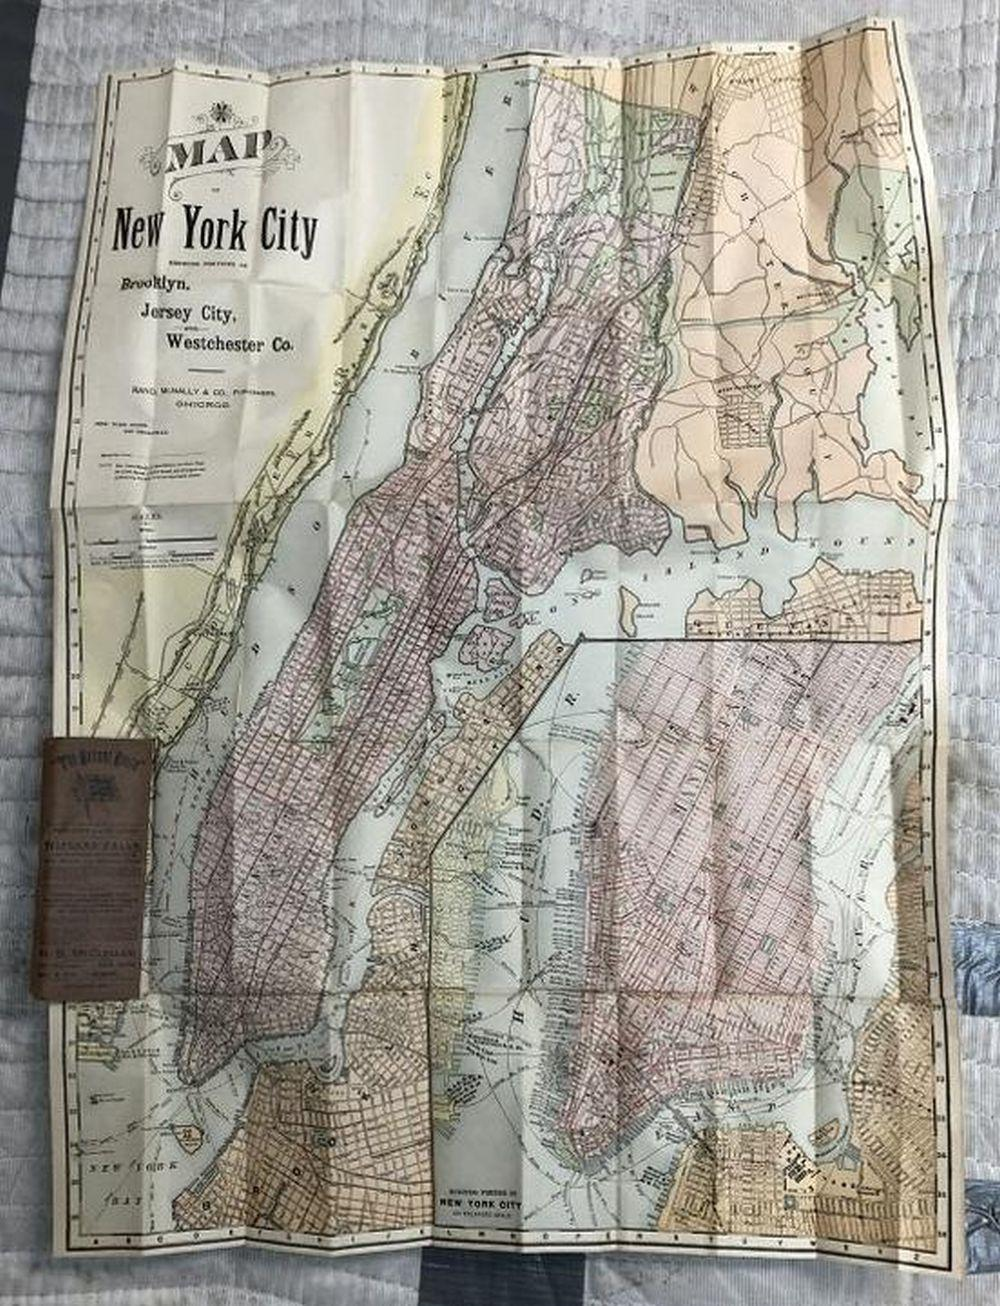 1892 RAND, MCNALLY & CO. FOLDING NEW YORK POCKET MAP